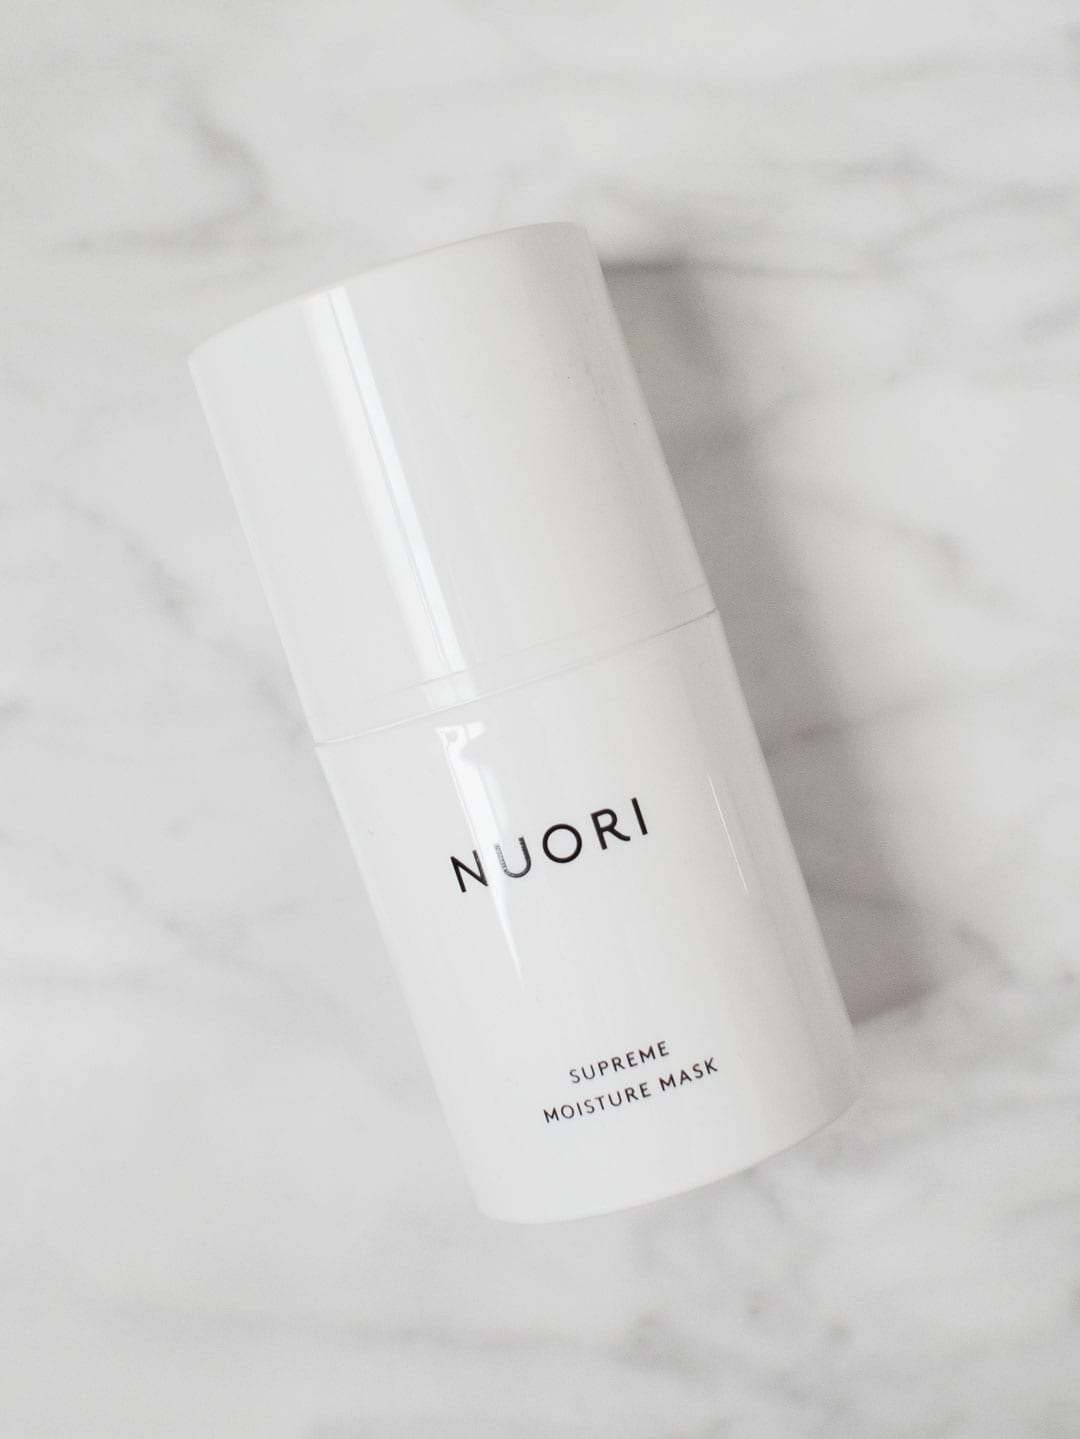 Best Face Masks & Treatments | NUORI Supreme Moisture Mask